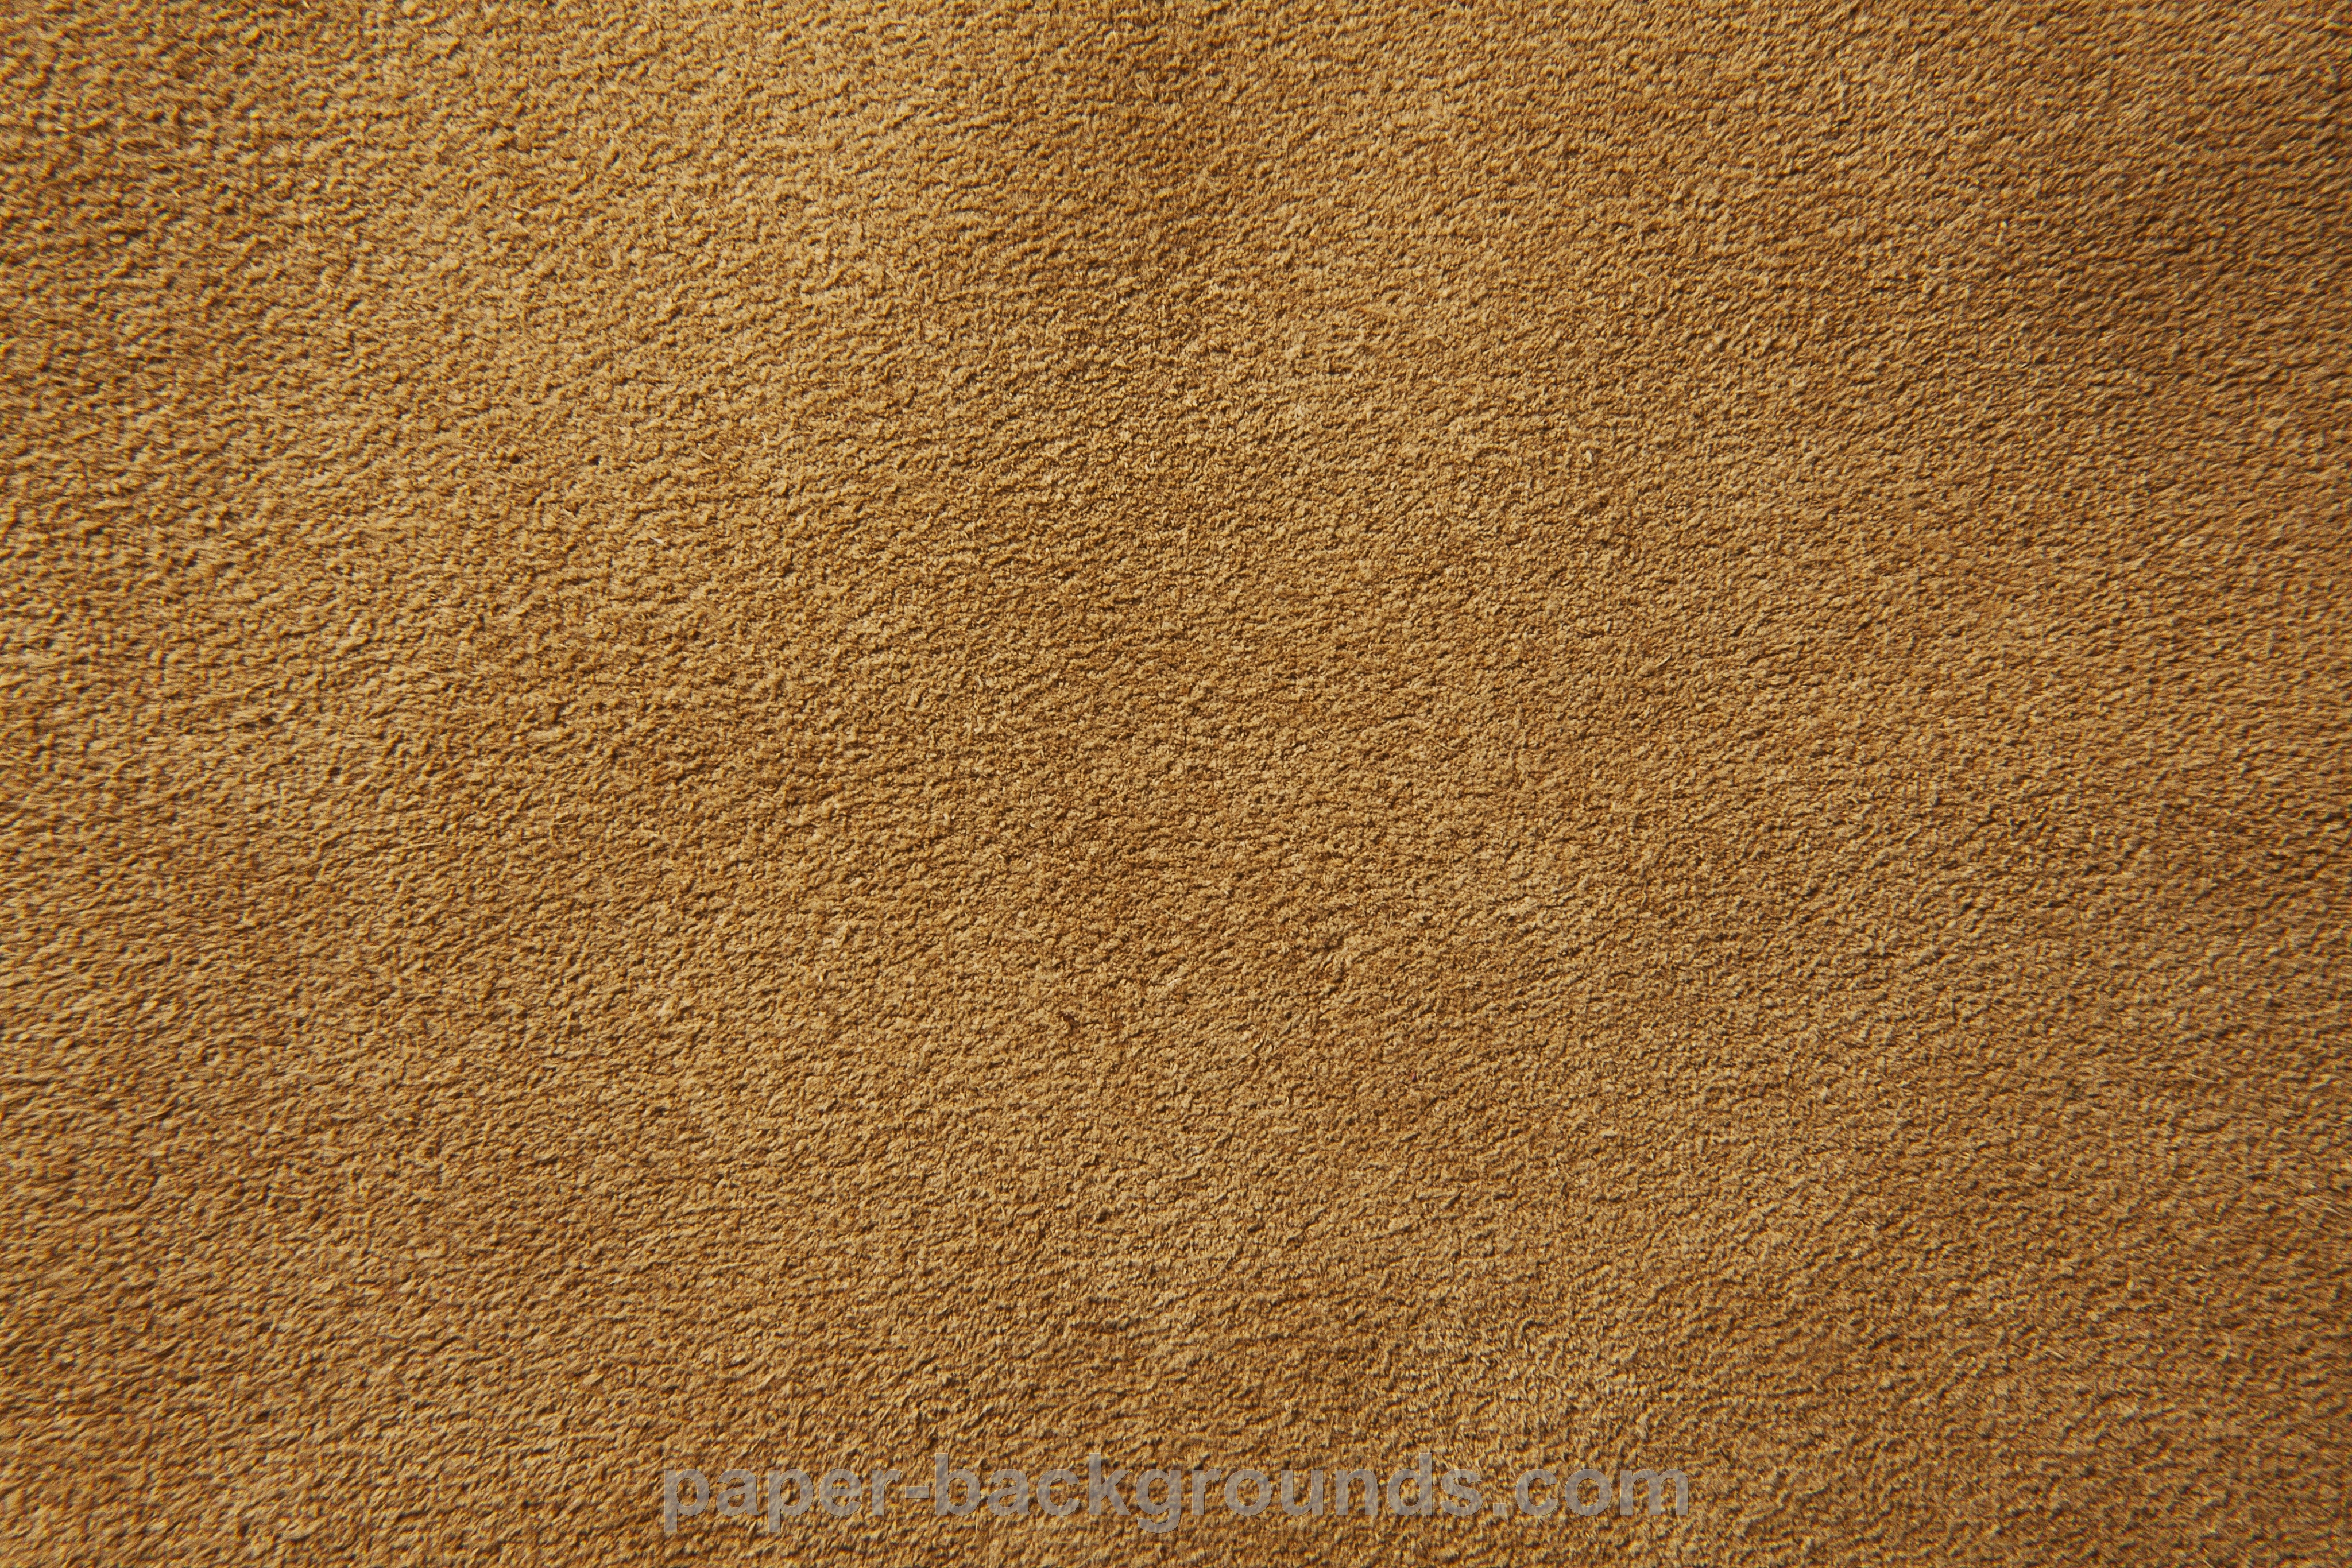 Leather wallpaper images wallpapersafari for Hd wallpapers for home walls